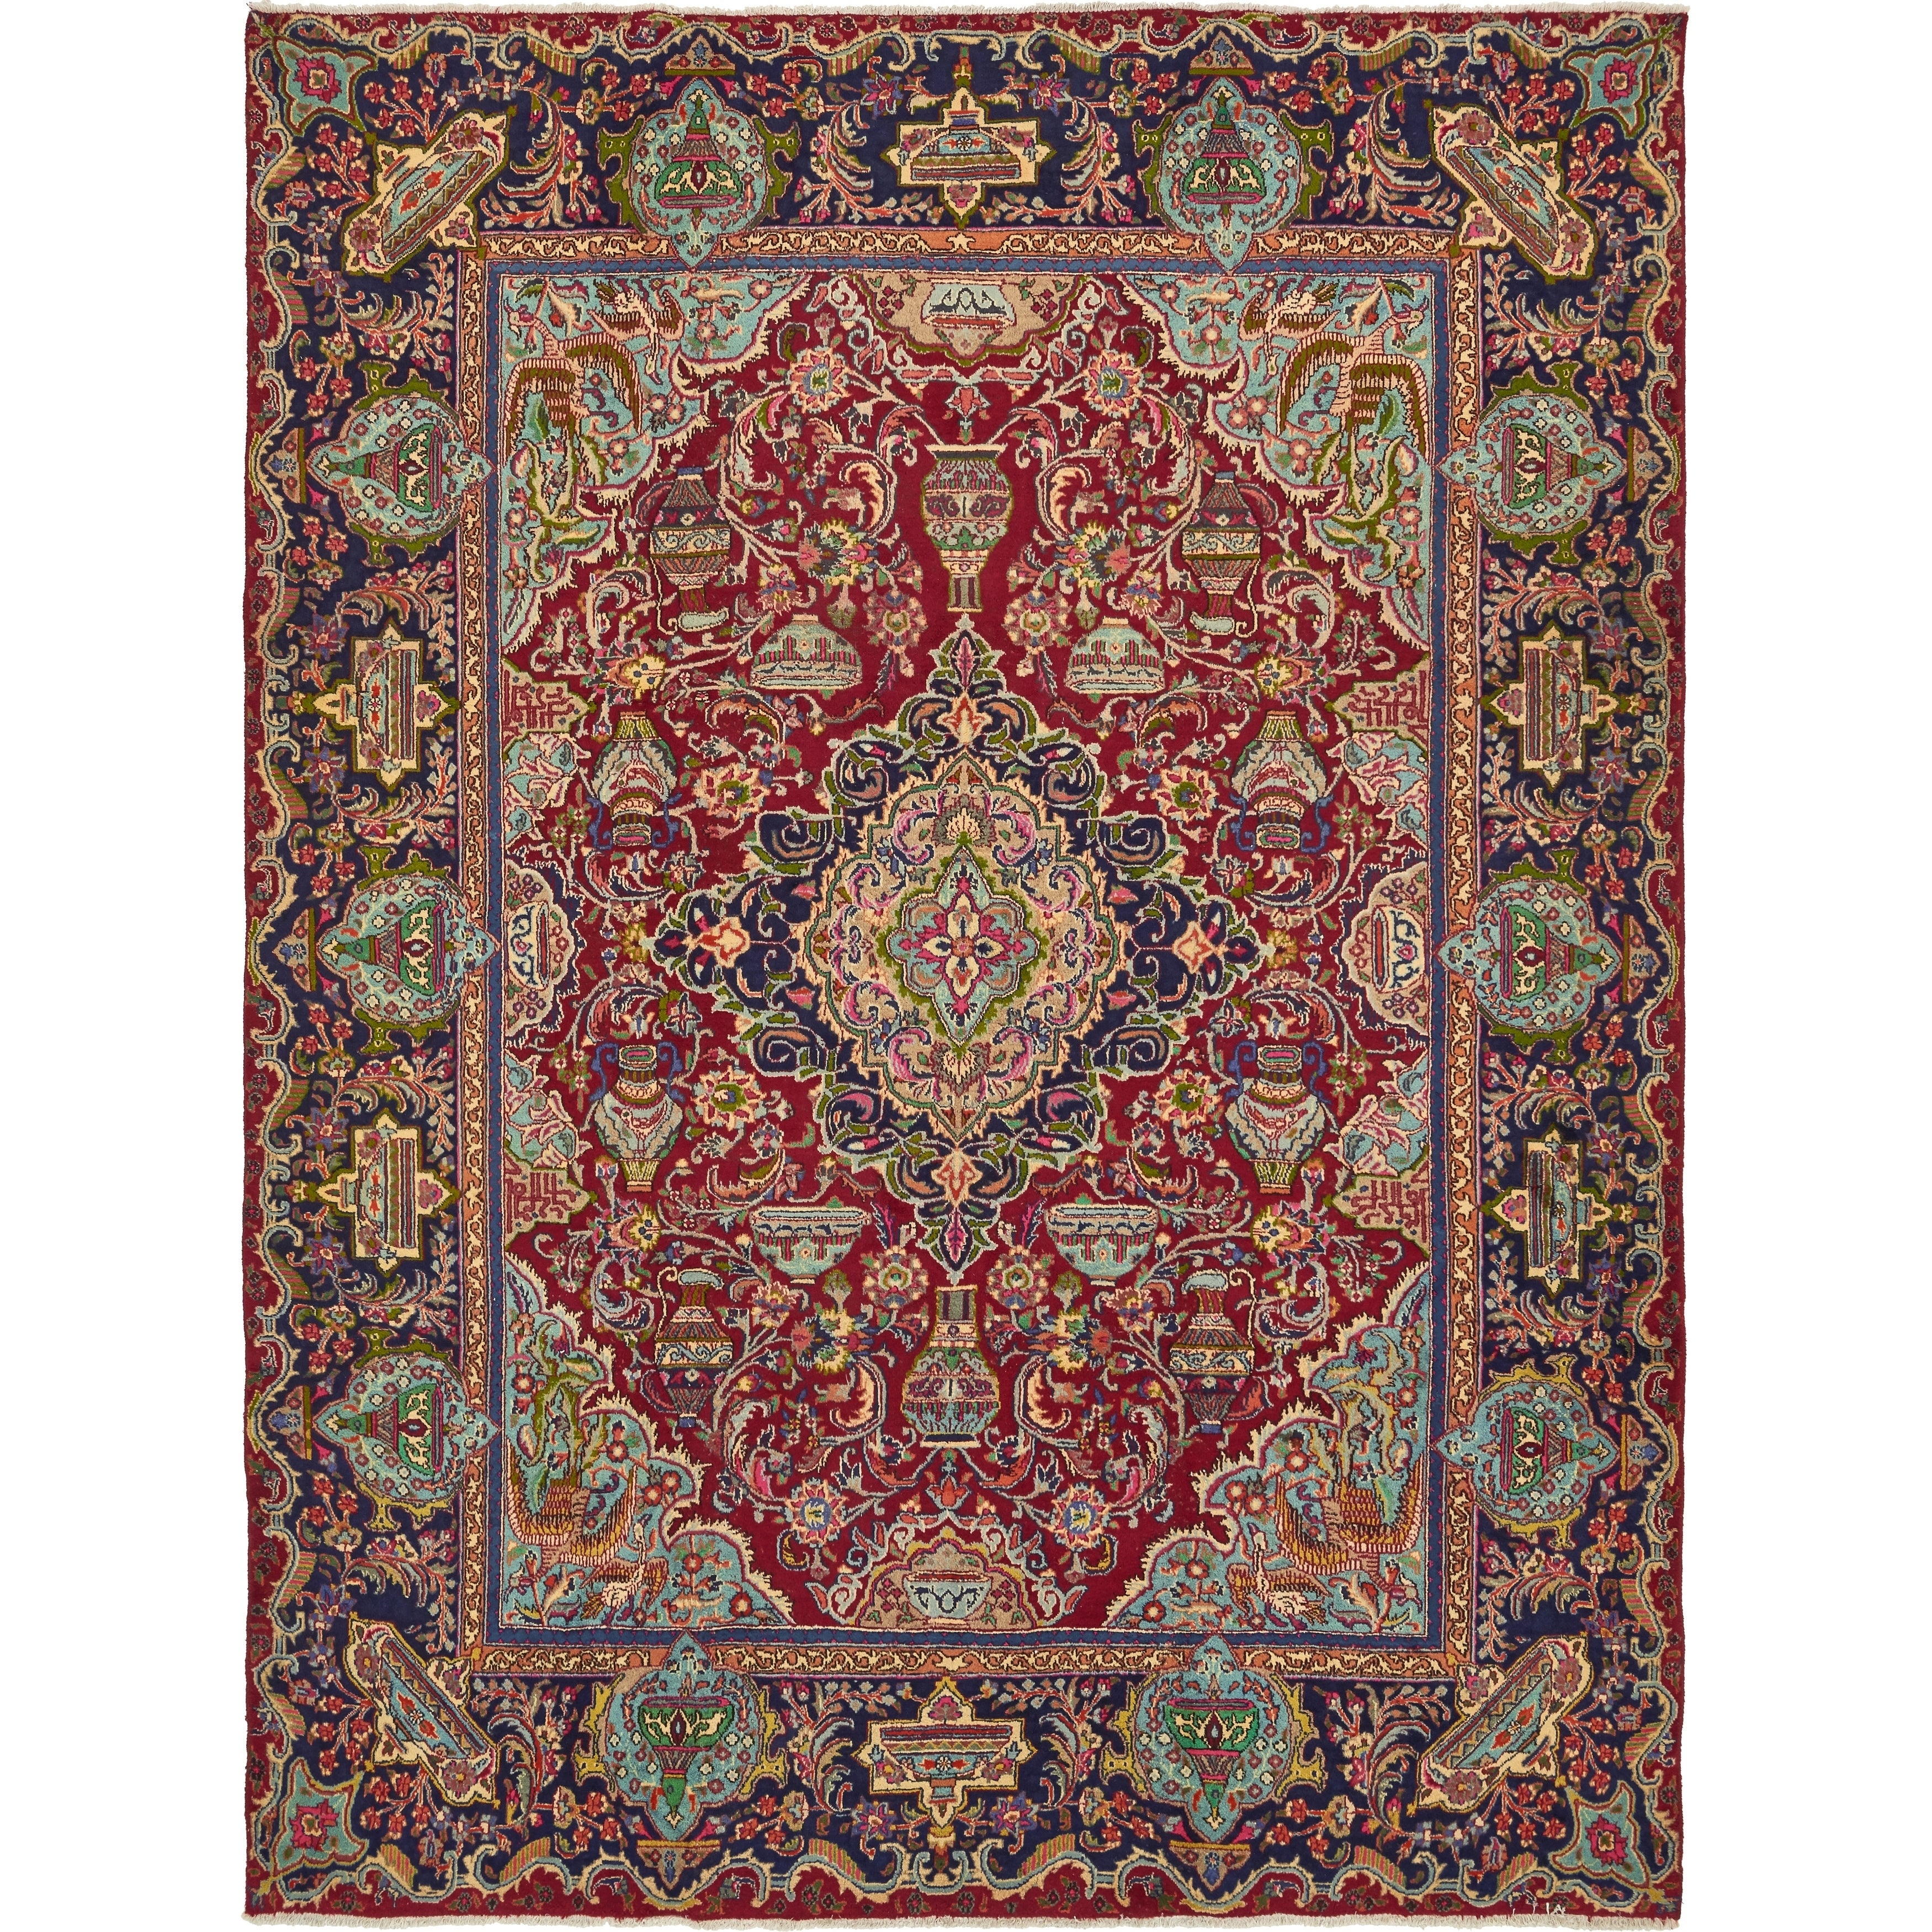 Hand Knotted Kashmar Wool Area Rug - 9 6 x 12 7 (Red - 9 6 x 12 7)